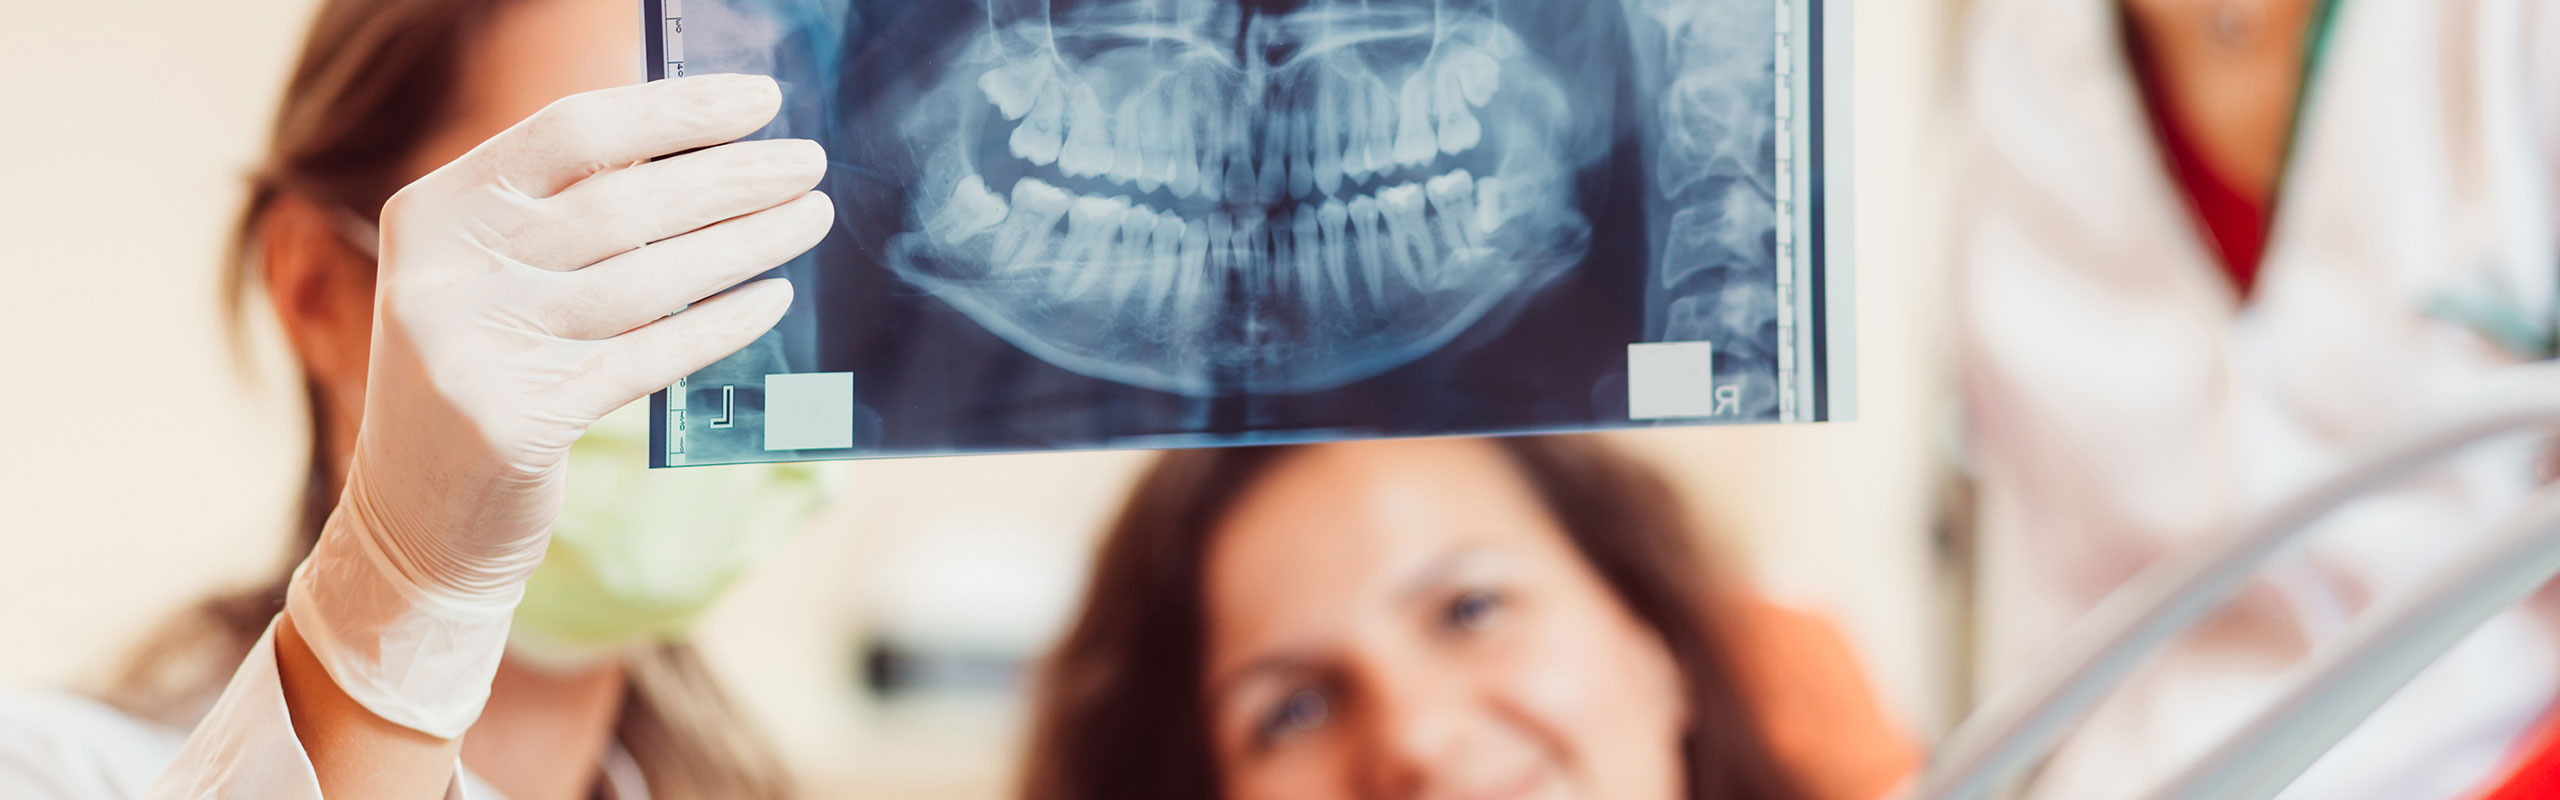 Wisdom Teeth Removal Lehi UT